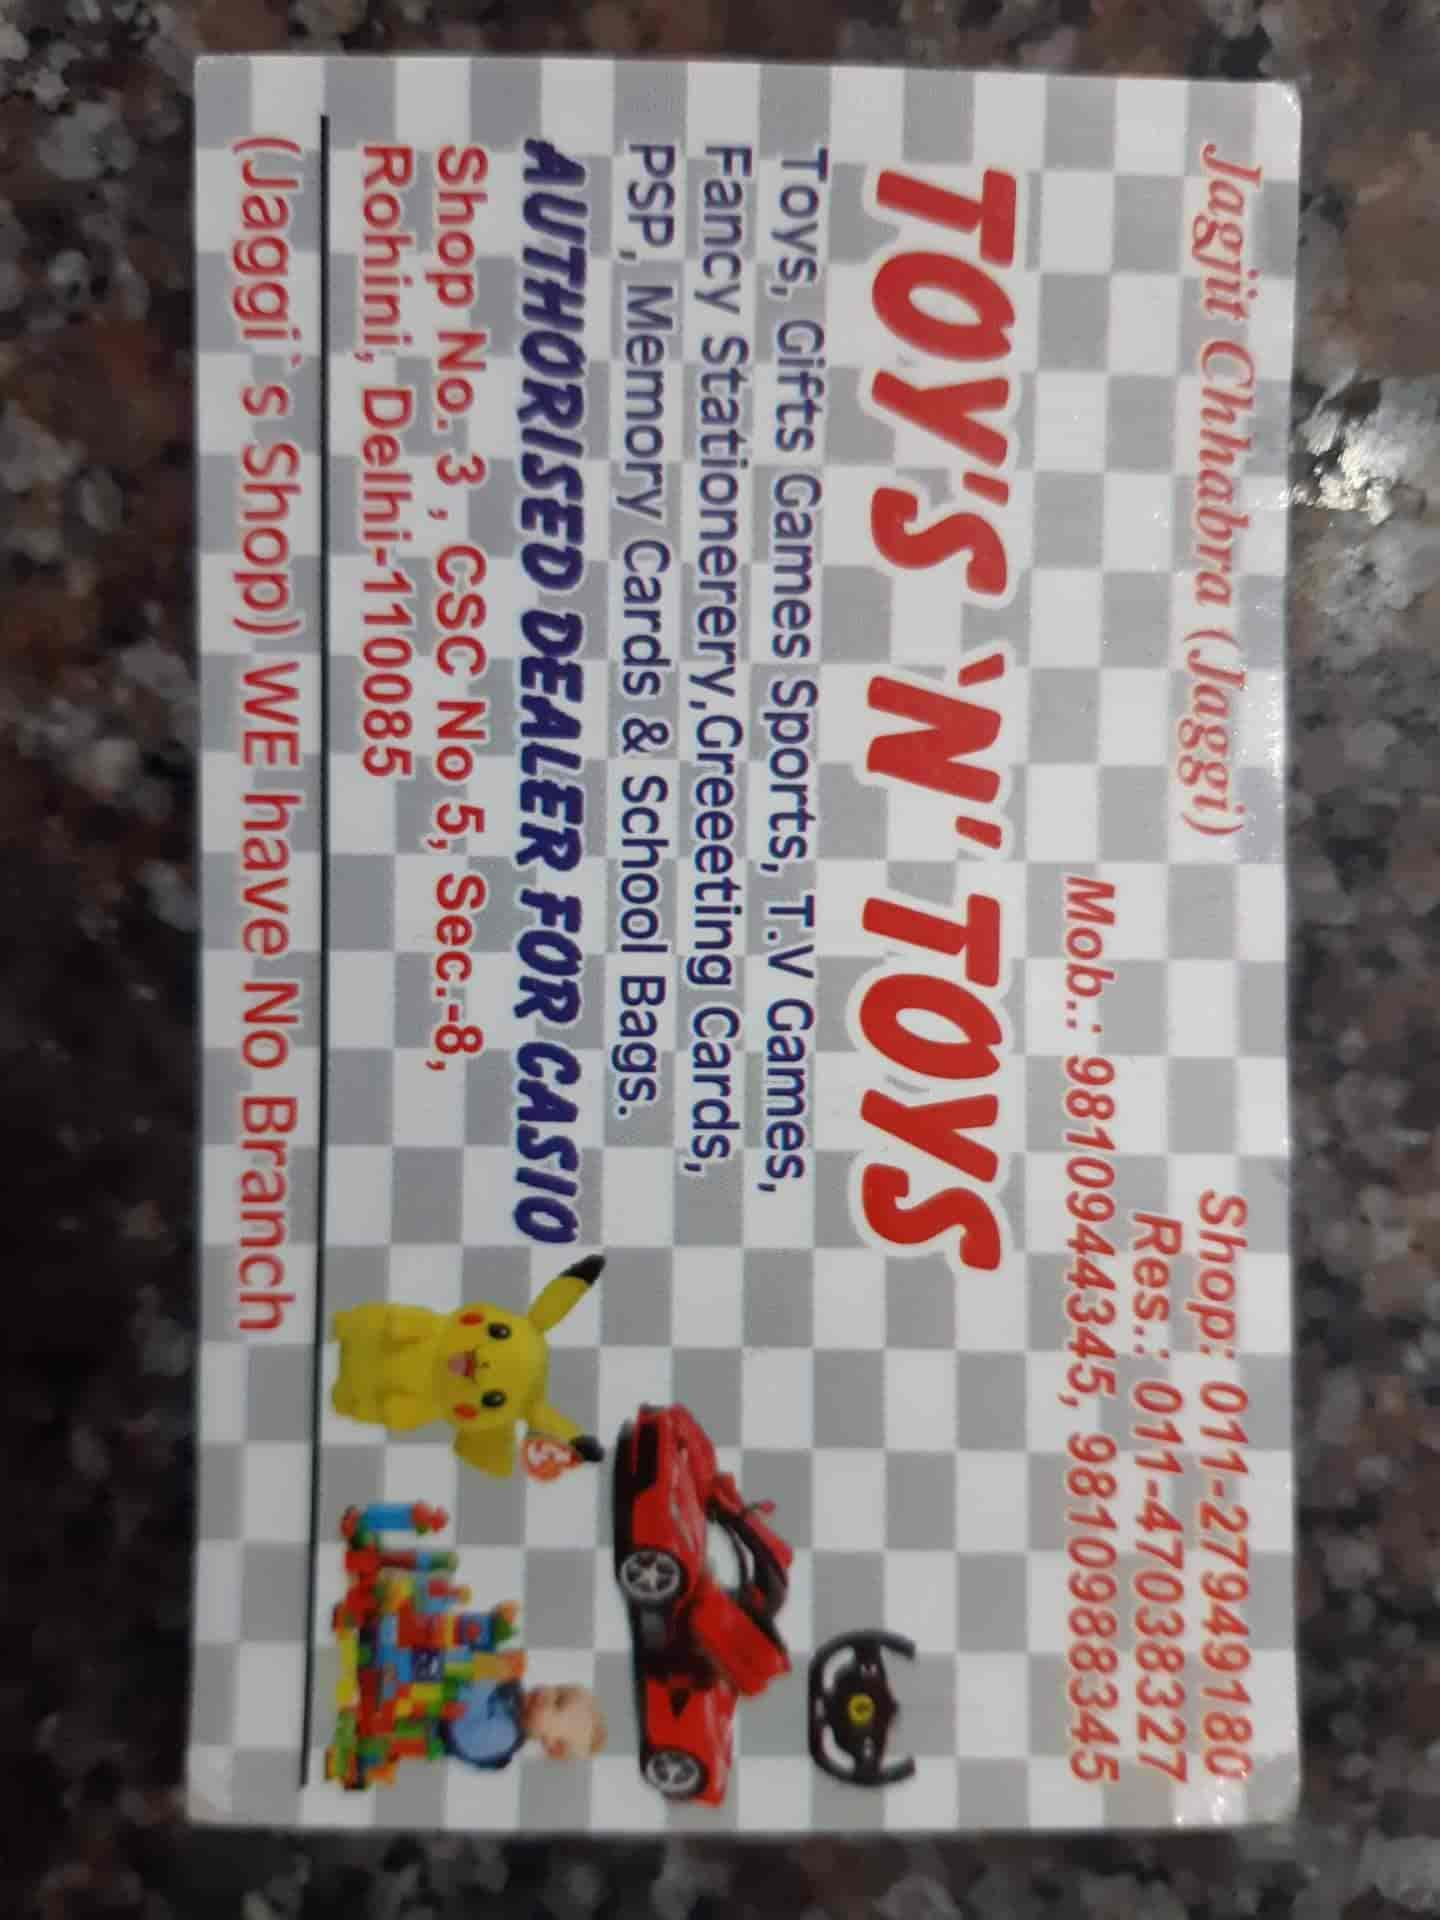 Toys N Toys, Rohini Sector 8 - Stationery Shops in Delhi - Justdial